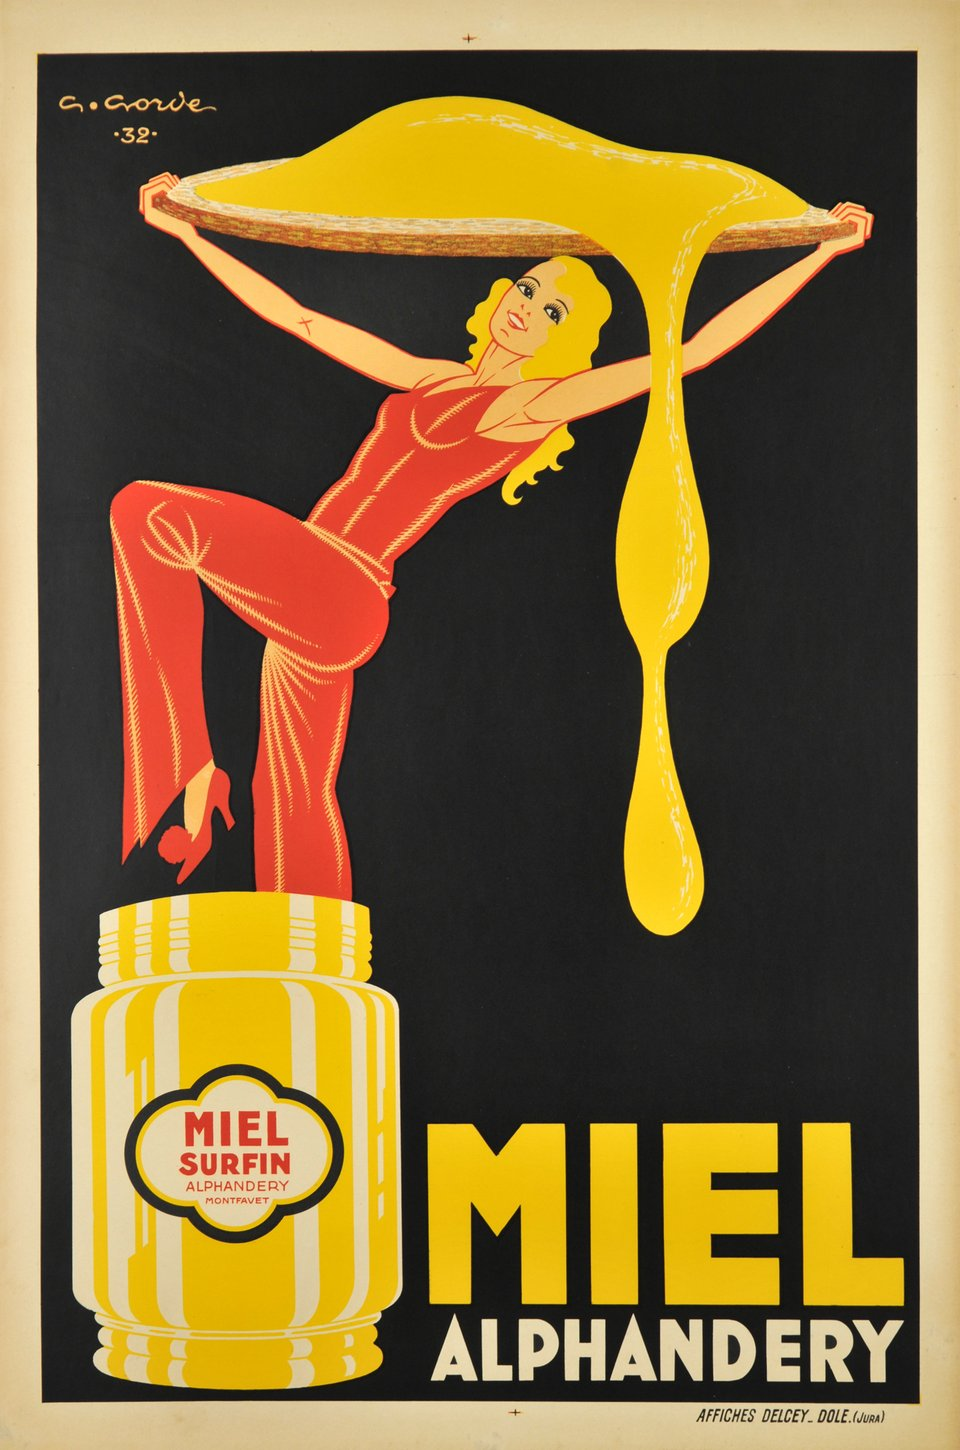 Miel Alphandery – Affiche ancienne – Gaston GORDE – 1932